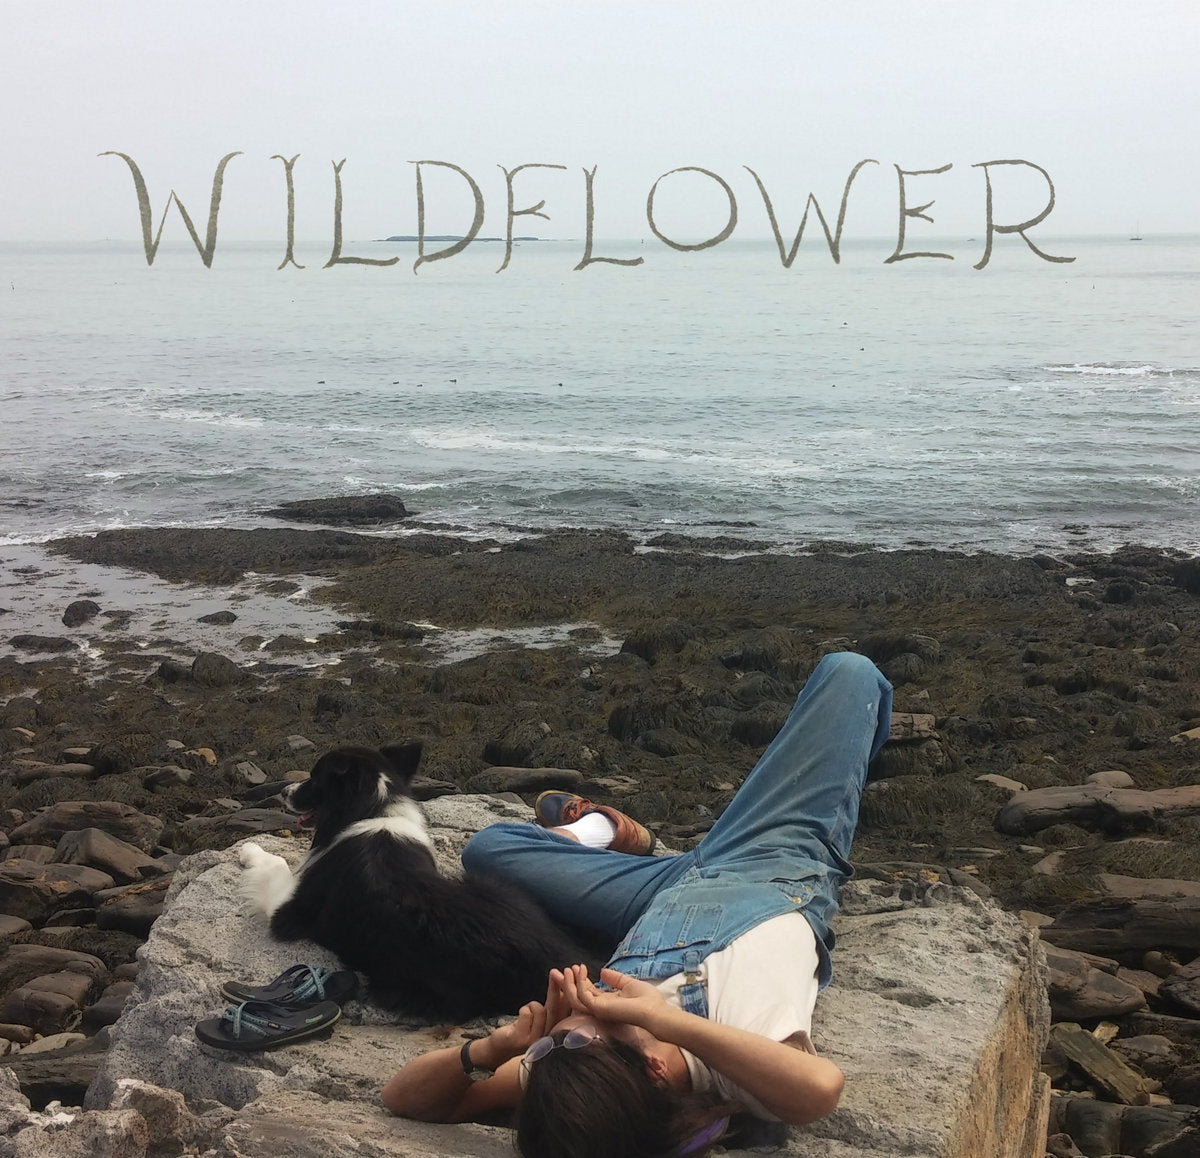 Wildflower - Part One